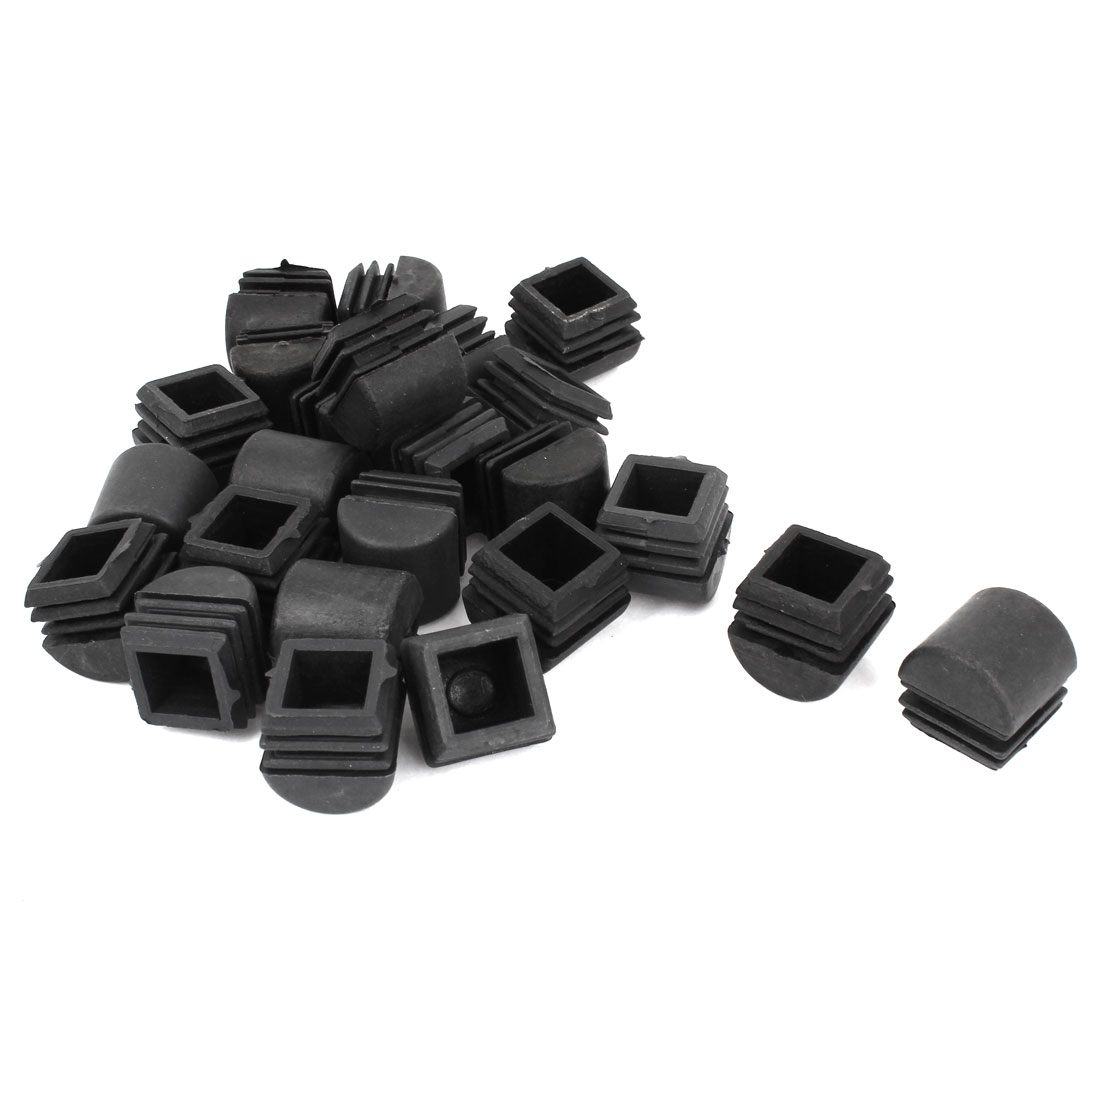 24 Pcs Square Multi-Gauge Dome Insert Black 25mmx25mm for Box Section Tube